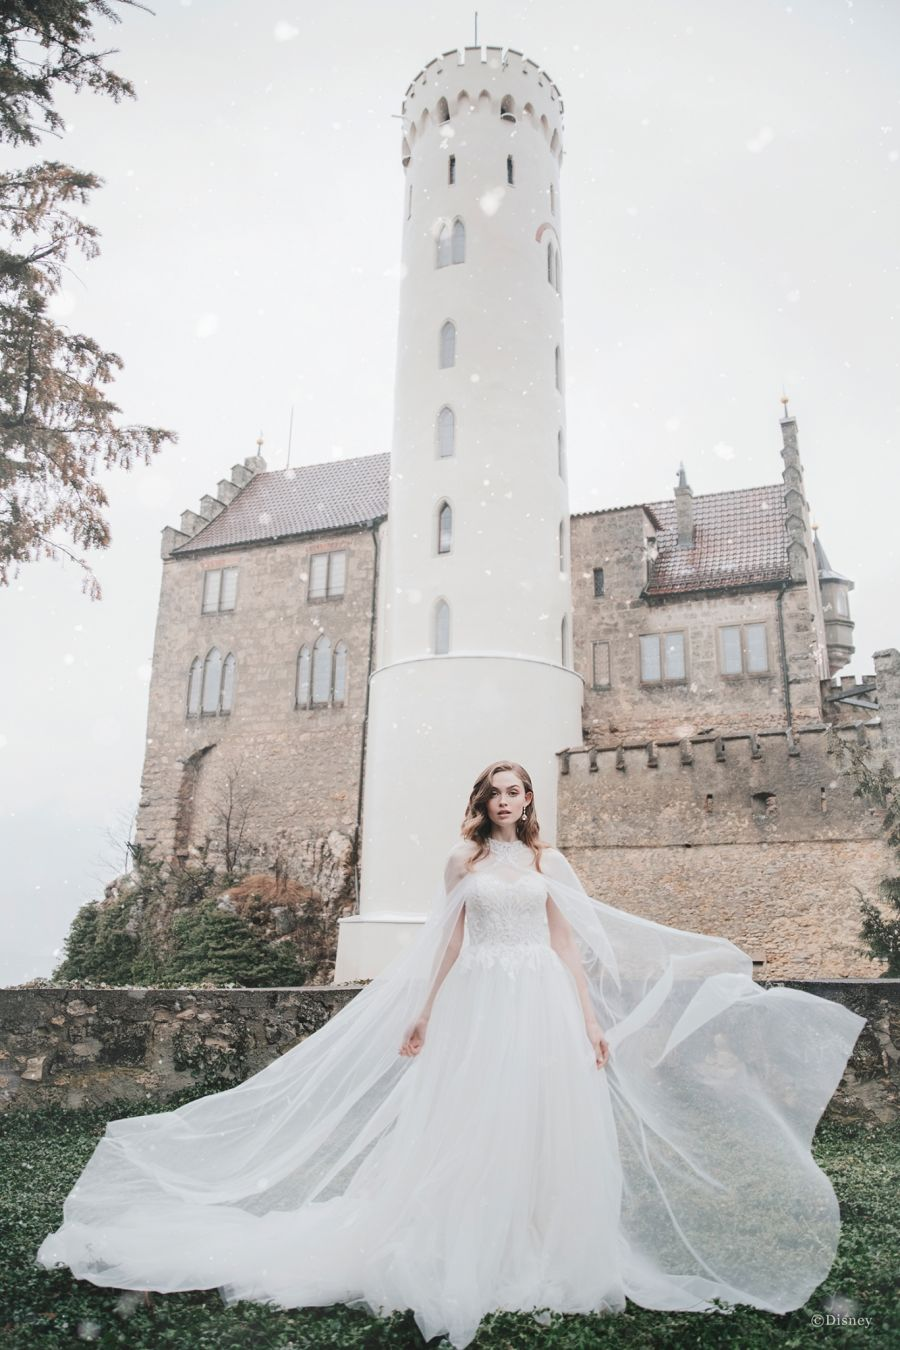 Allure Disney wedding dresses at Miosa Bride